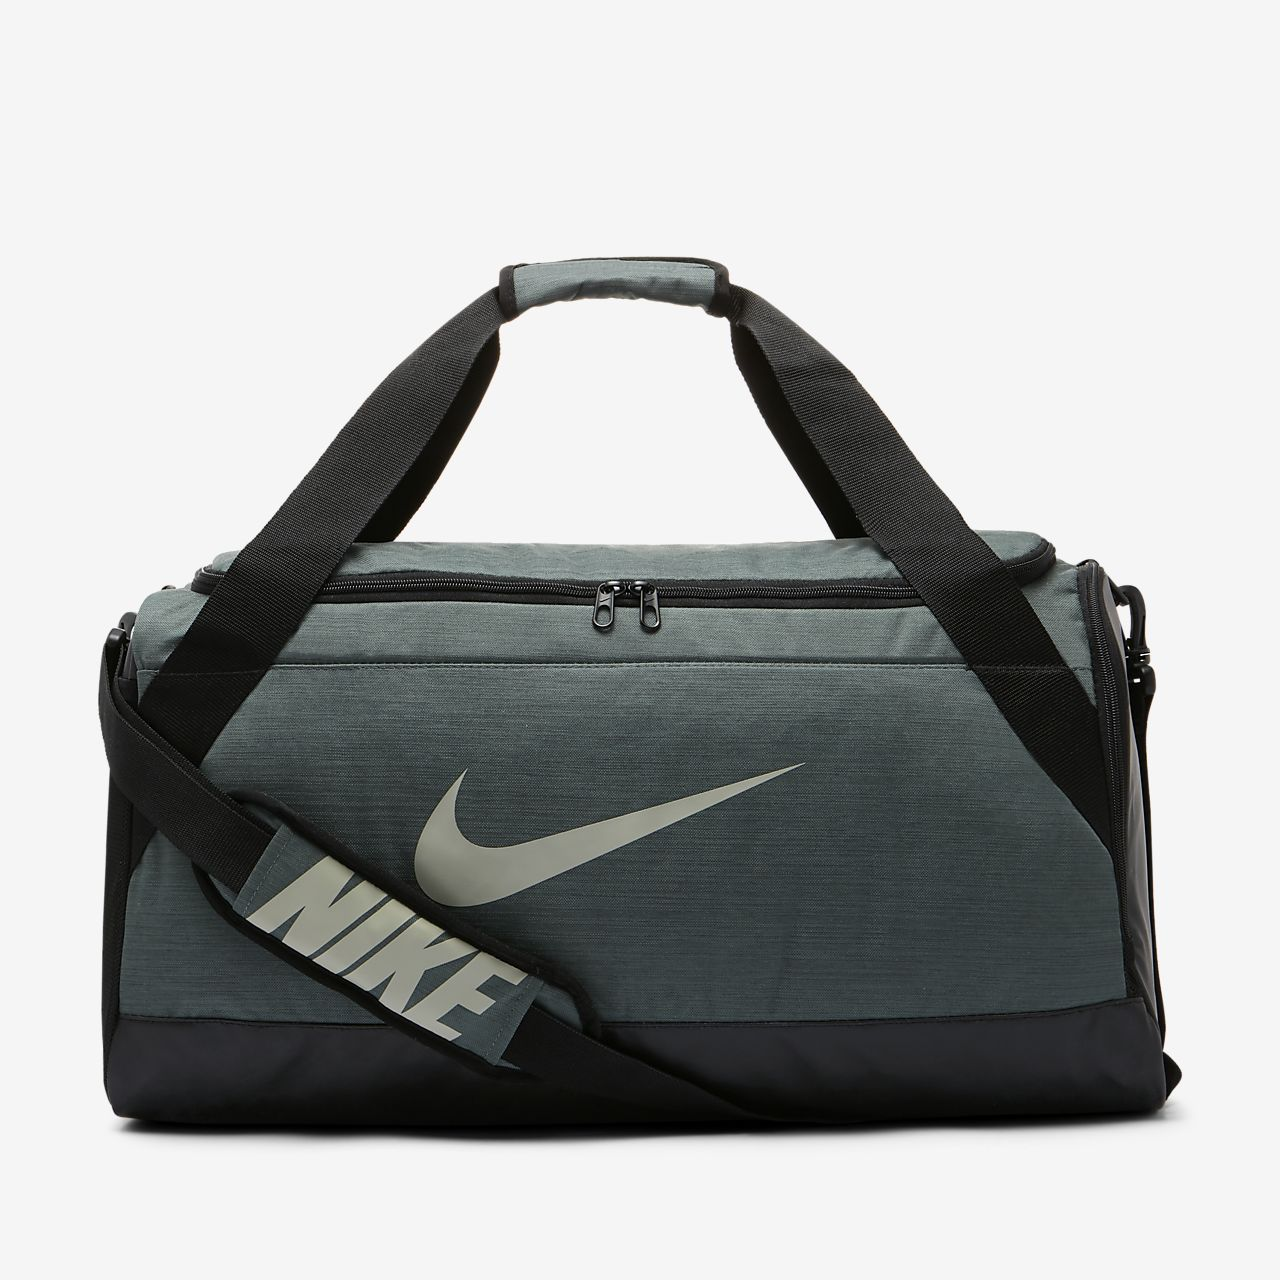 c52f0fca68 Nike Sportswear Brasilia (Medium) Training Duffel Bag. Nike.com BE